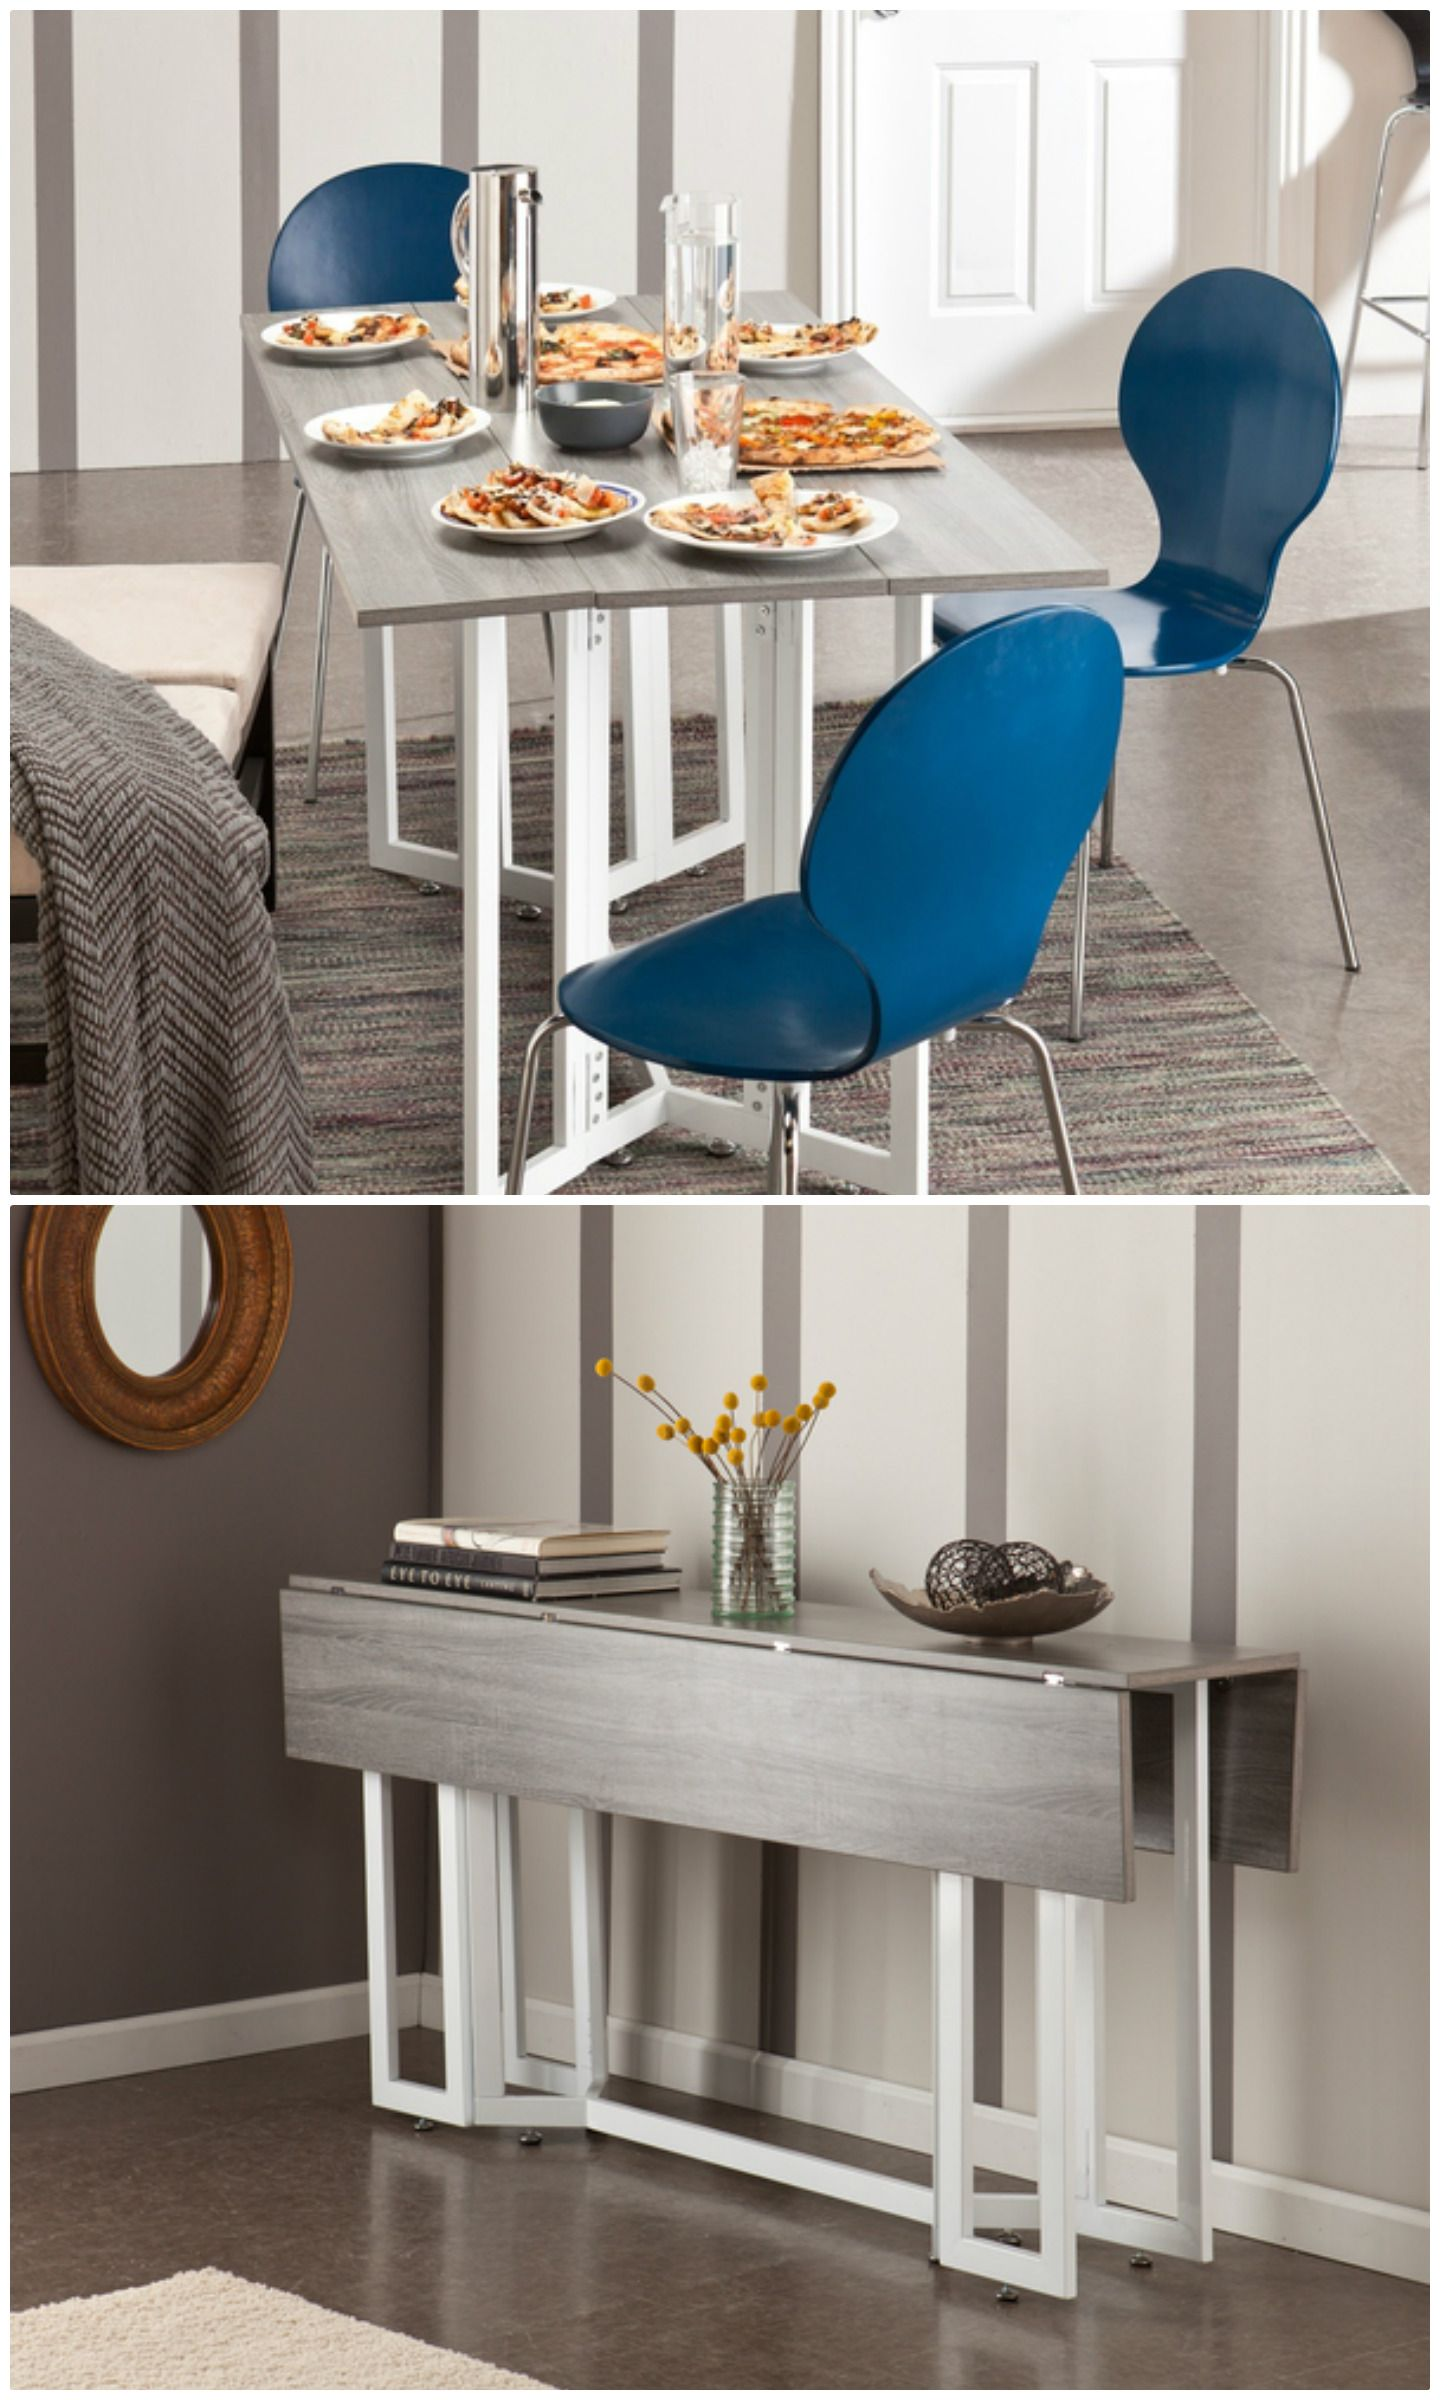 Twenty Dining Tables That Work Great In Small Spaces Living In A Shoebox Space Saving Dining Table Dining Table Small Space Small Table Decor